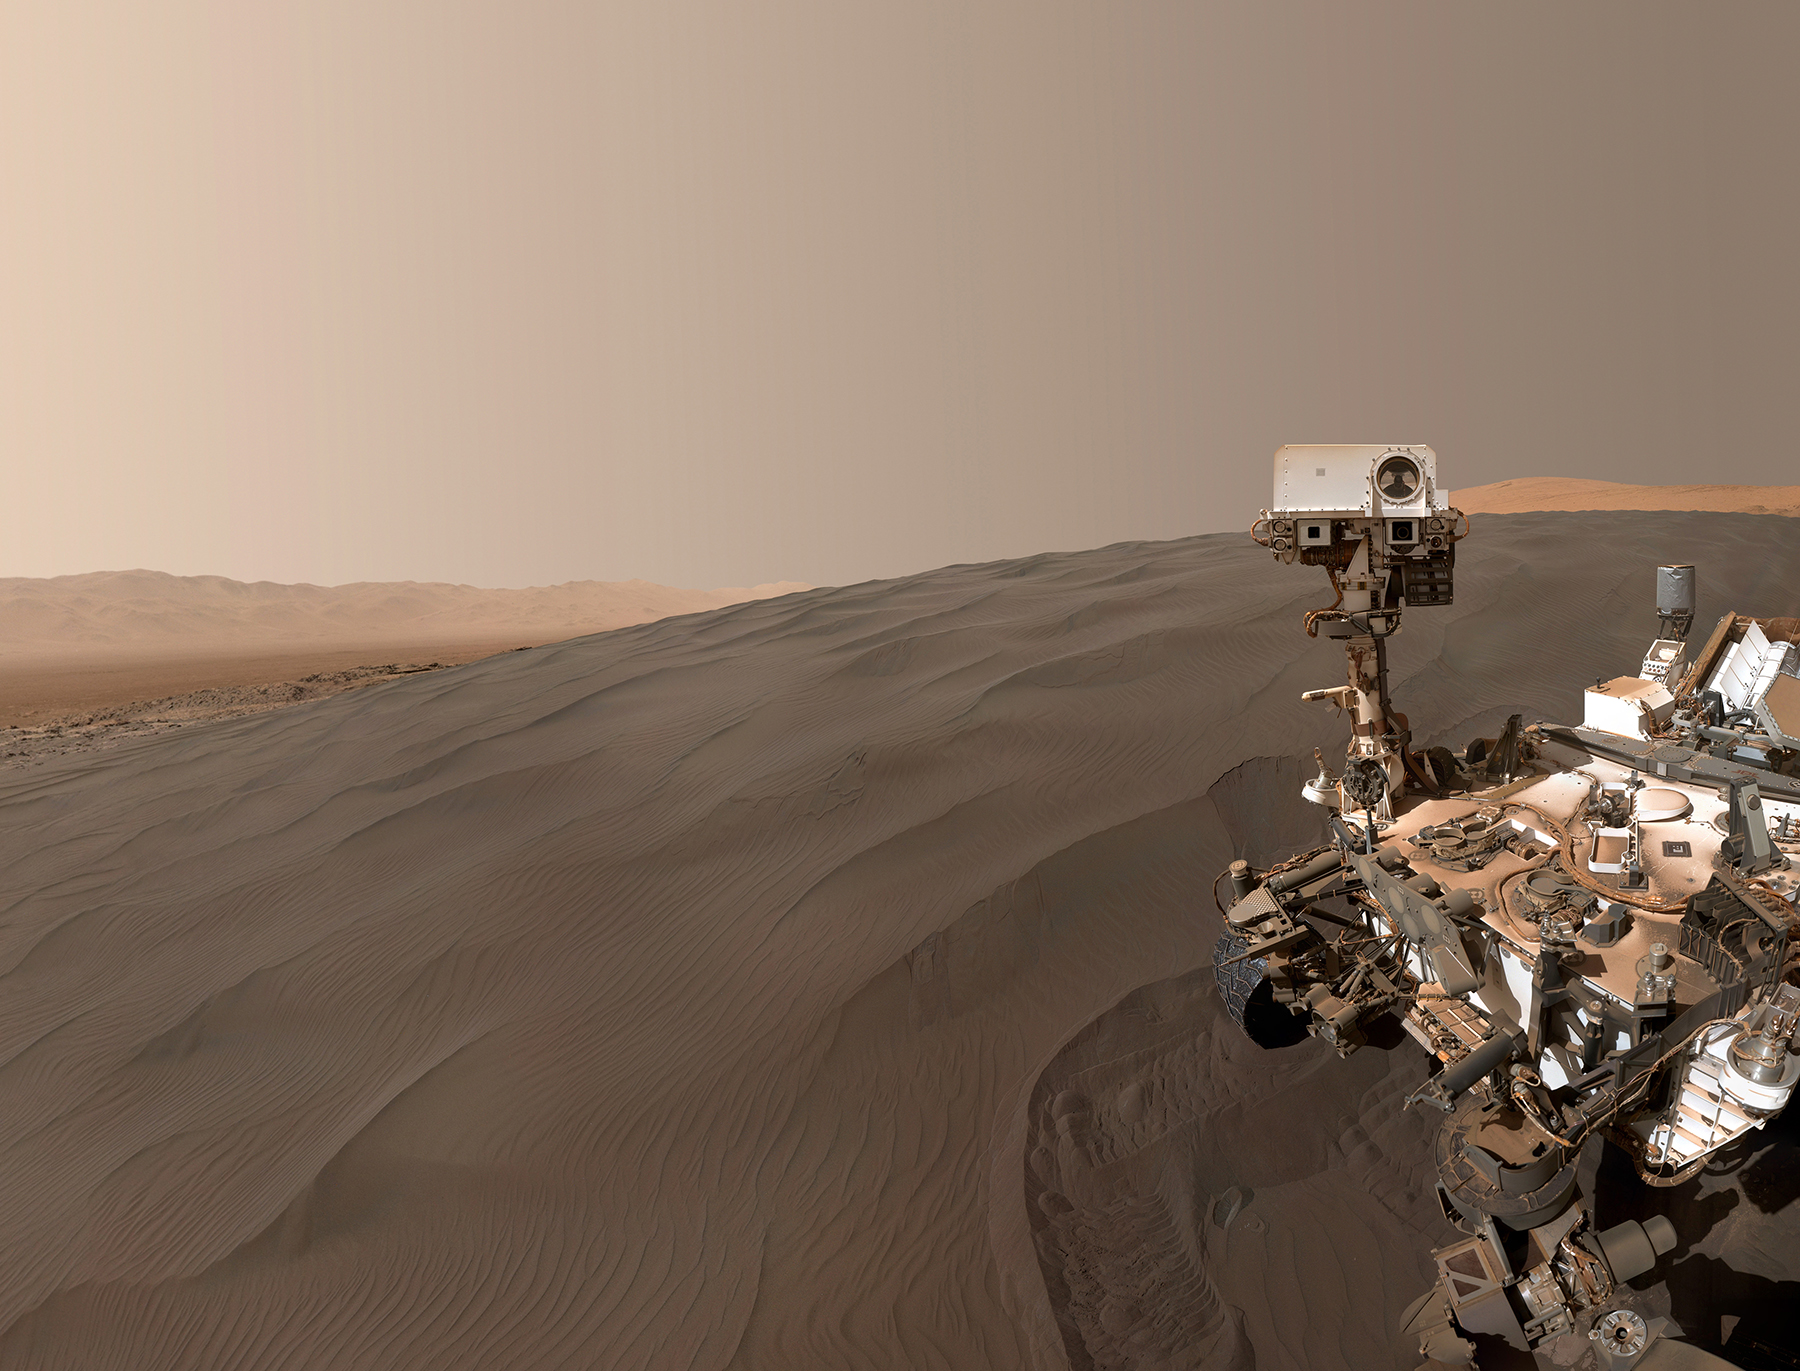 Mars Curiosity Rover reeking into frame on surface of Mars